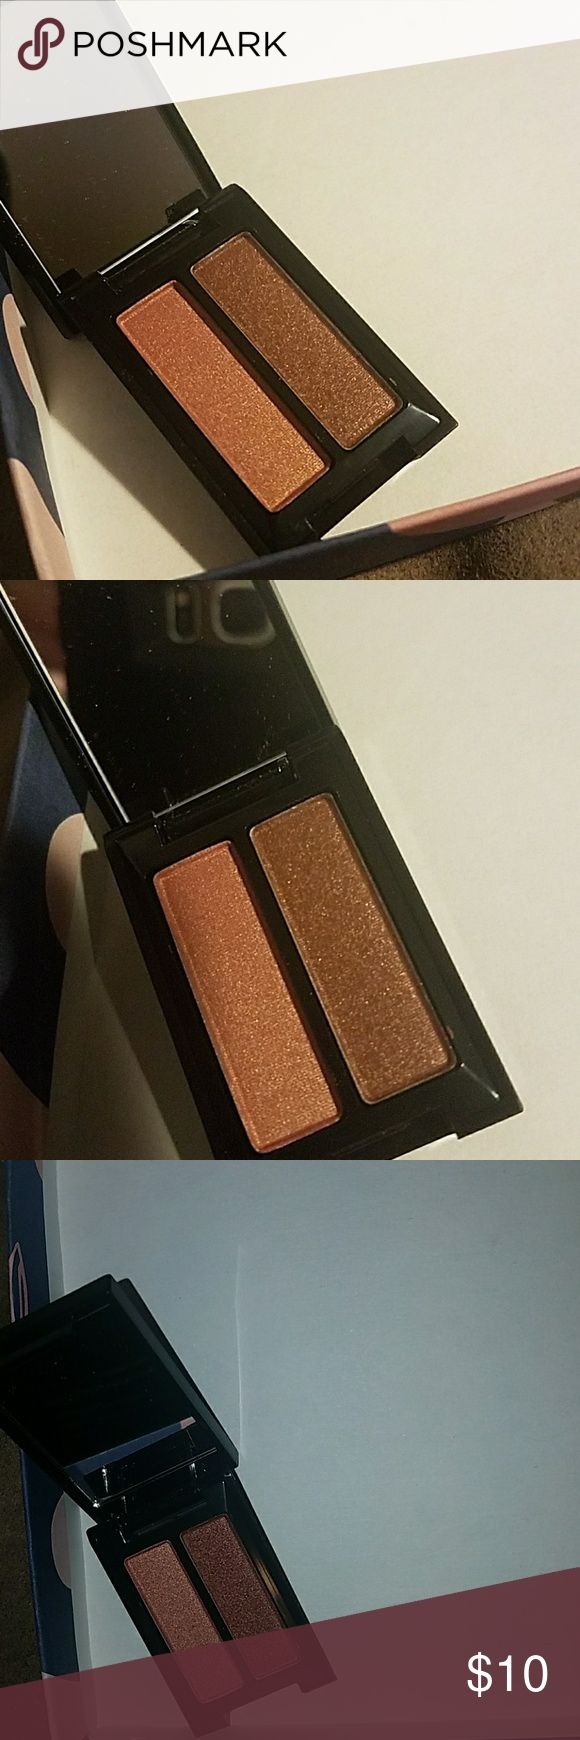 smashbox eyeshadow duo Golden hour eyeshadow duo.  Colors are turned on and psyched.  Never used or swatched. Sephora Makeup Eyeshadow